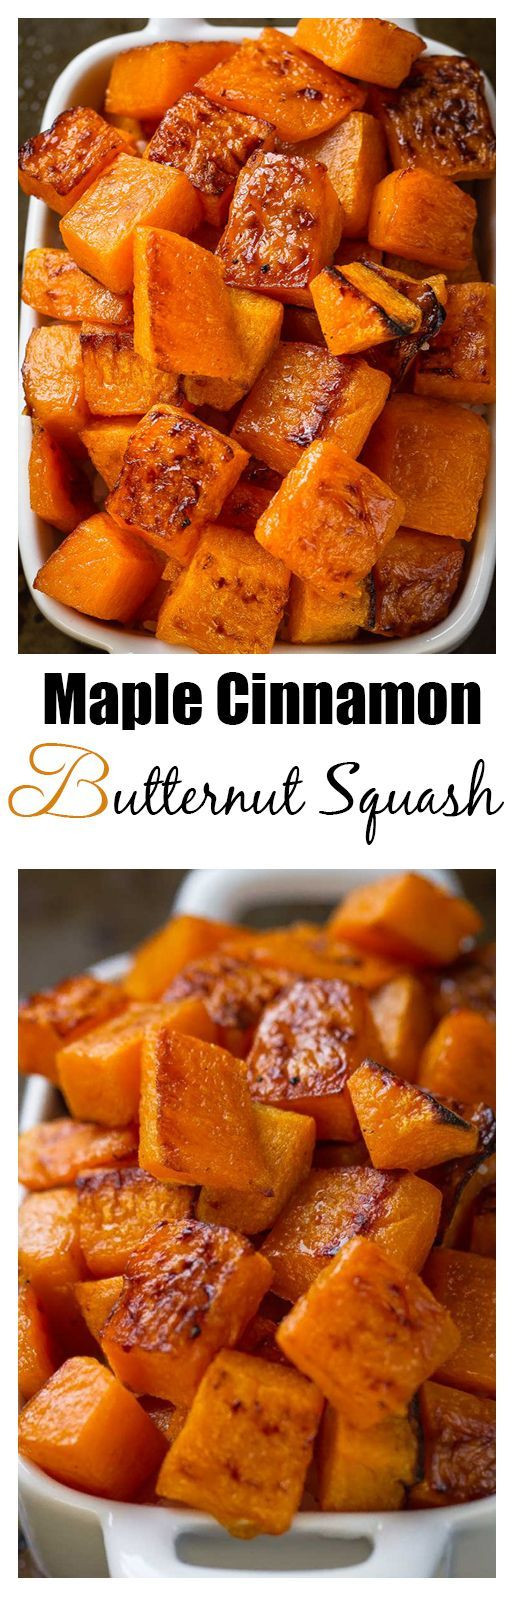 Thanksgiving Side Dishes 2019  Maple Cinnamon Roasted Butternut Squash makes an easy